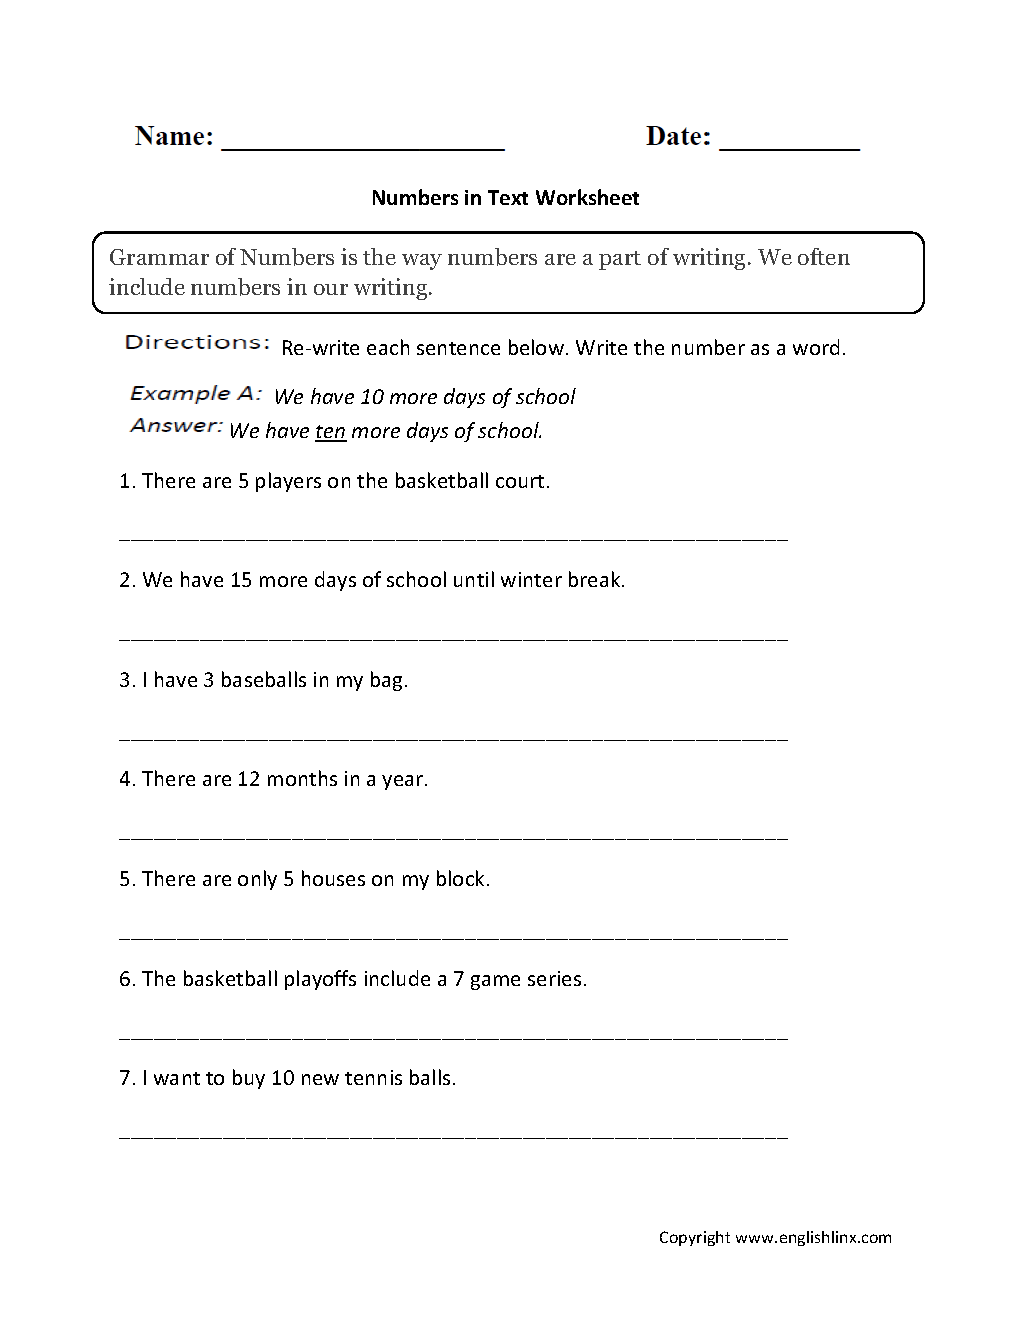 grammar mechanics worksheets grammar of numbers worksheets numbers in text worksheets